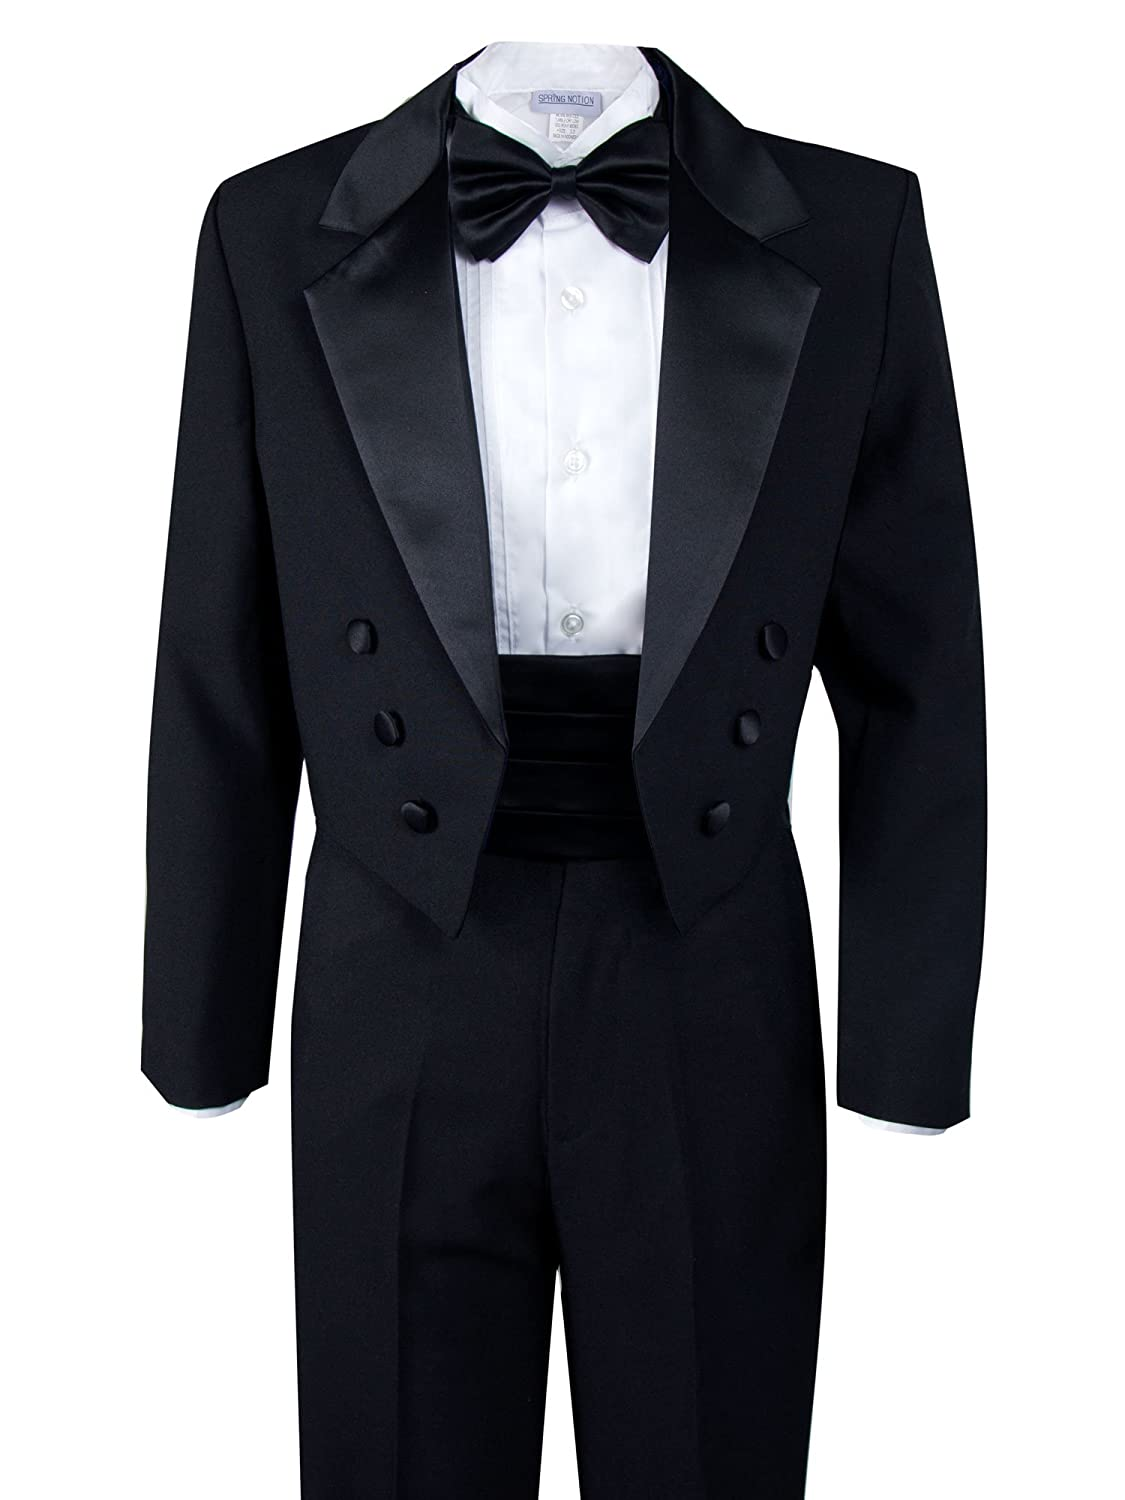 63f24008fe8 Tuxedo  Black single breasted jacket with smooth satin notched lapel   center vent tail  fully lined. Pants  Satin stripes line the sides of the  pants  ...